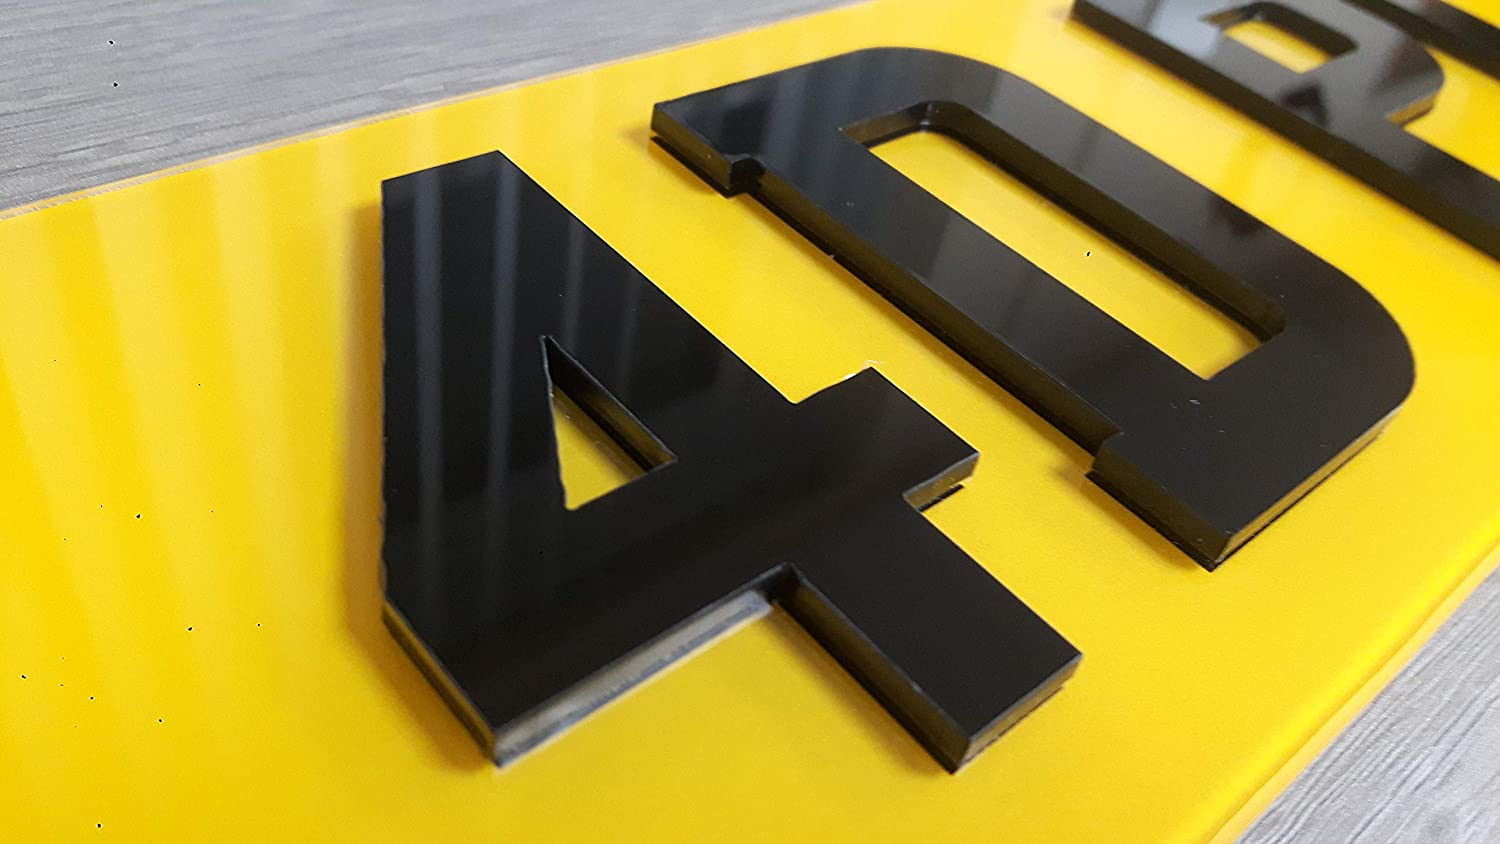 NO EXCEPTIONS Plate Services 4D PLATES 1 x PAIR ACRYLIC NUMBER PLATES 520mm x 111mm MADE TO LEGAL FORMAT ONLY